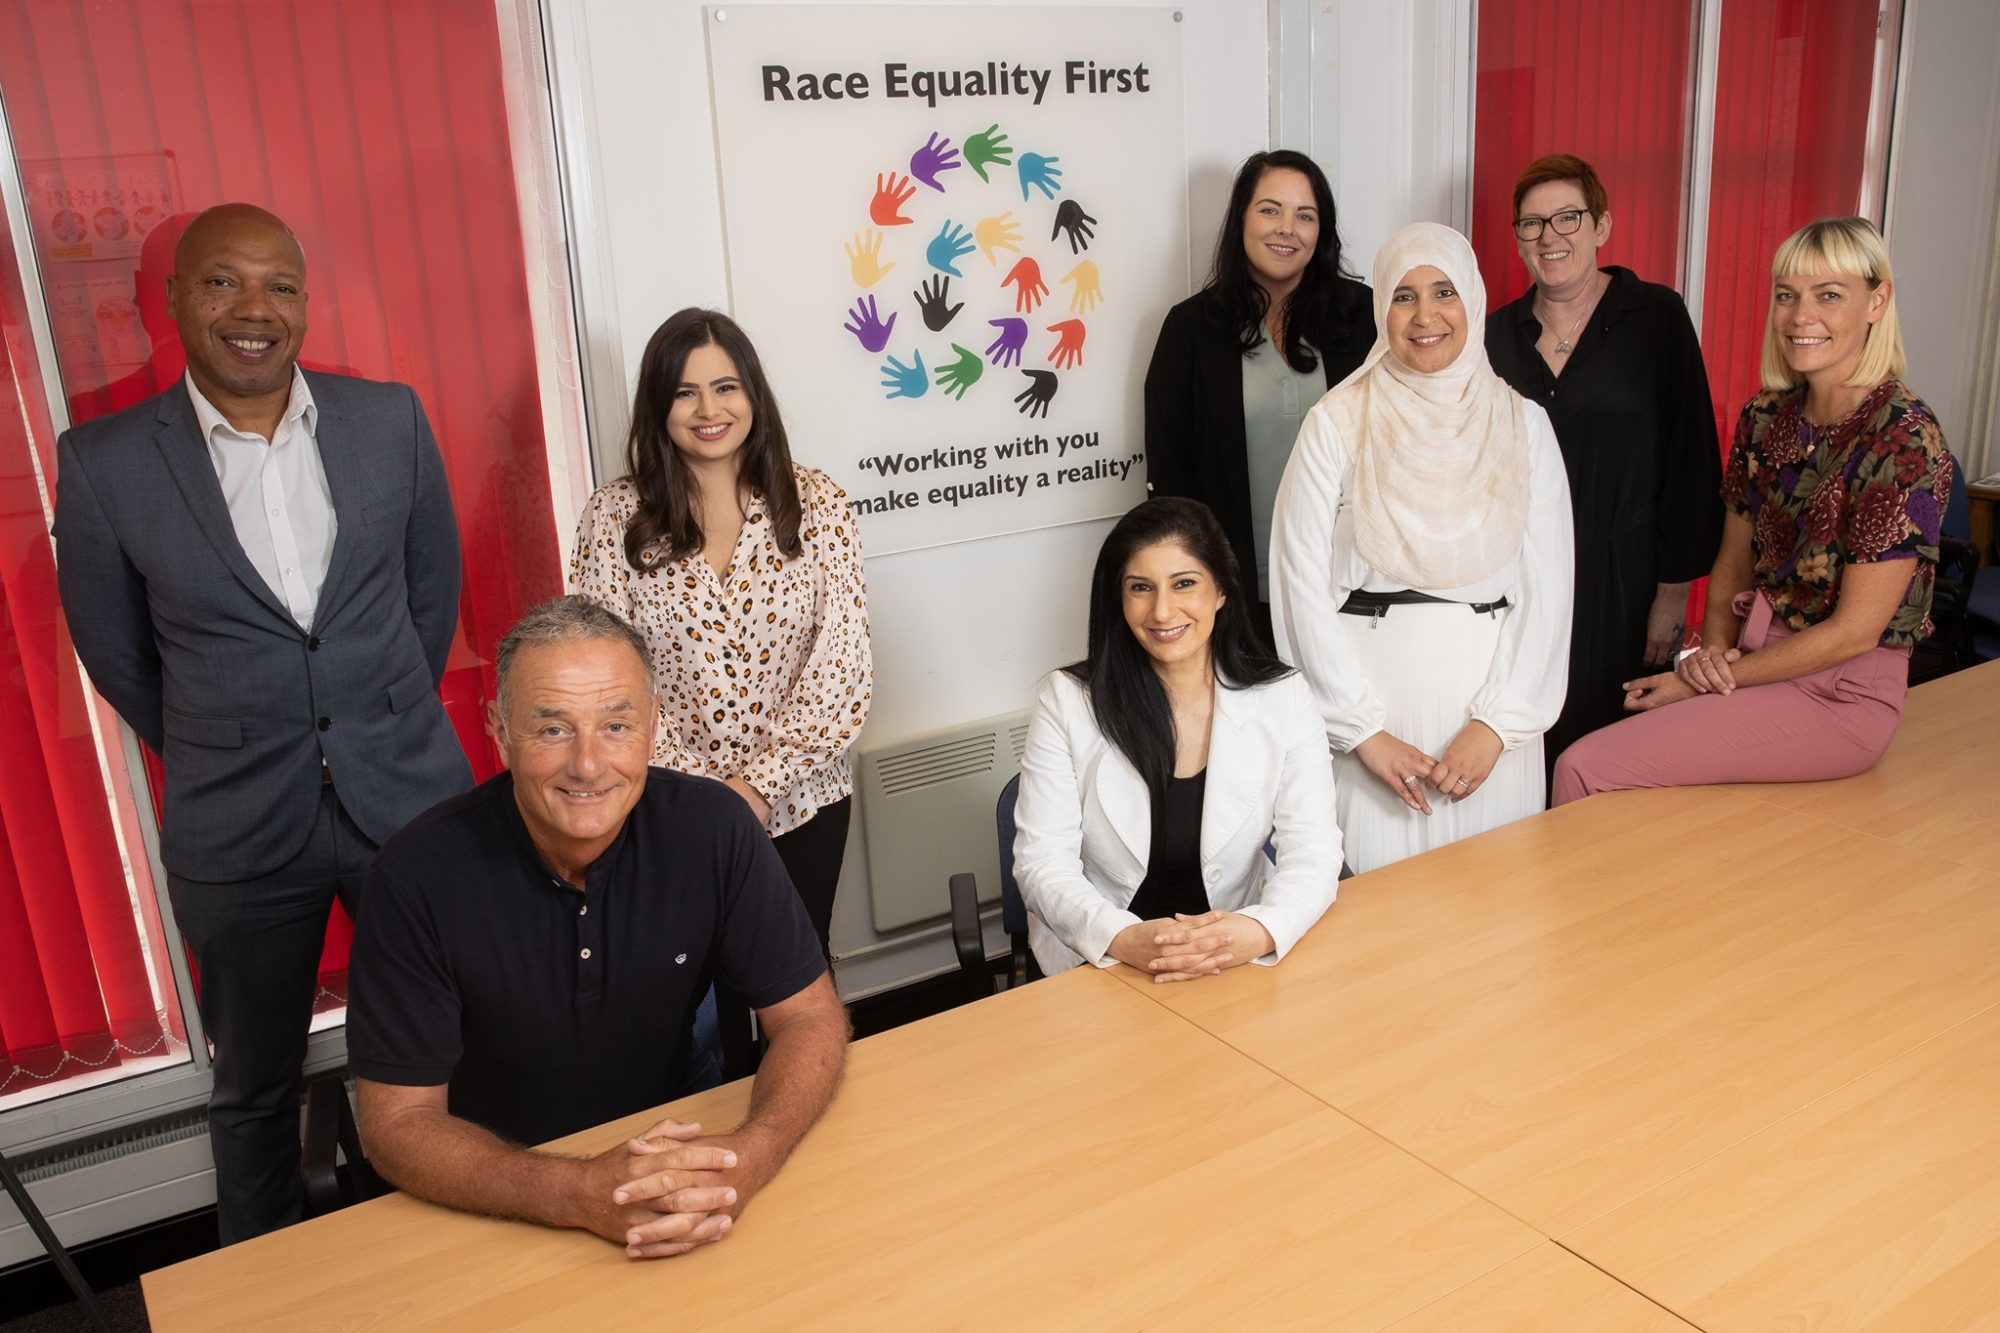 Islamophobia seminar with Race Equality First (REF)